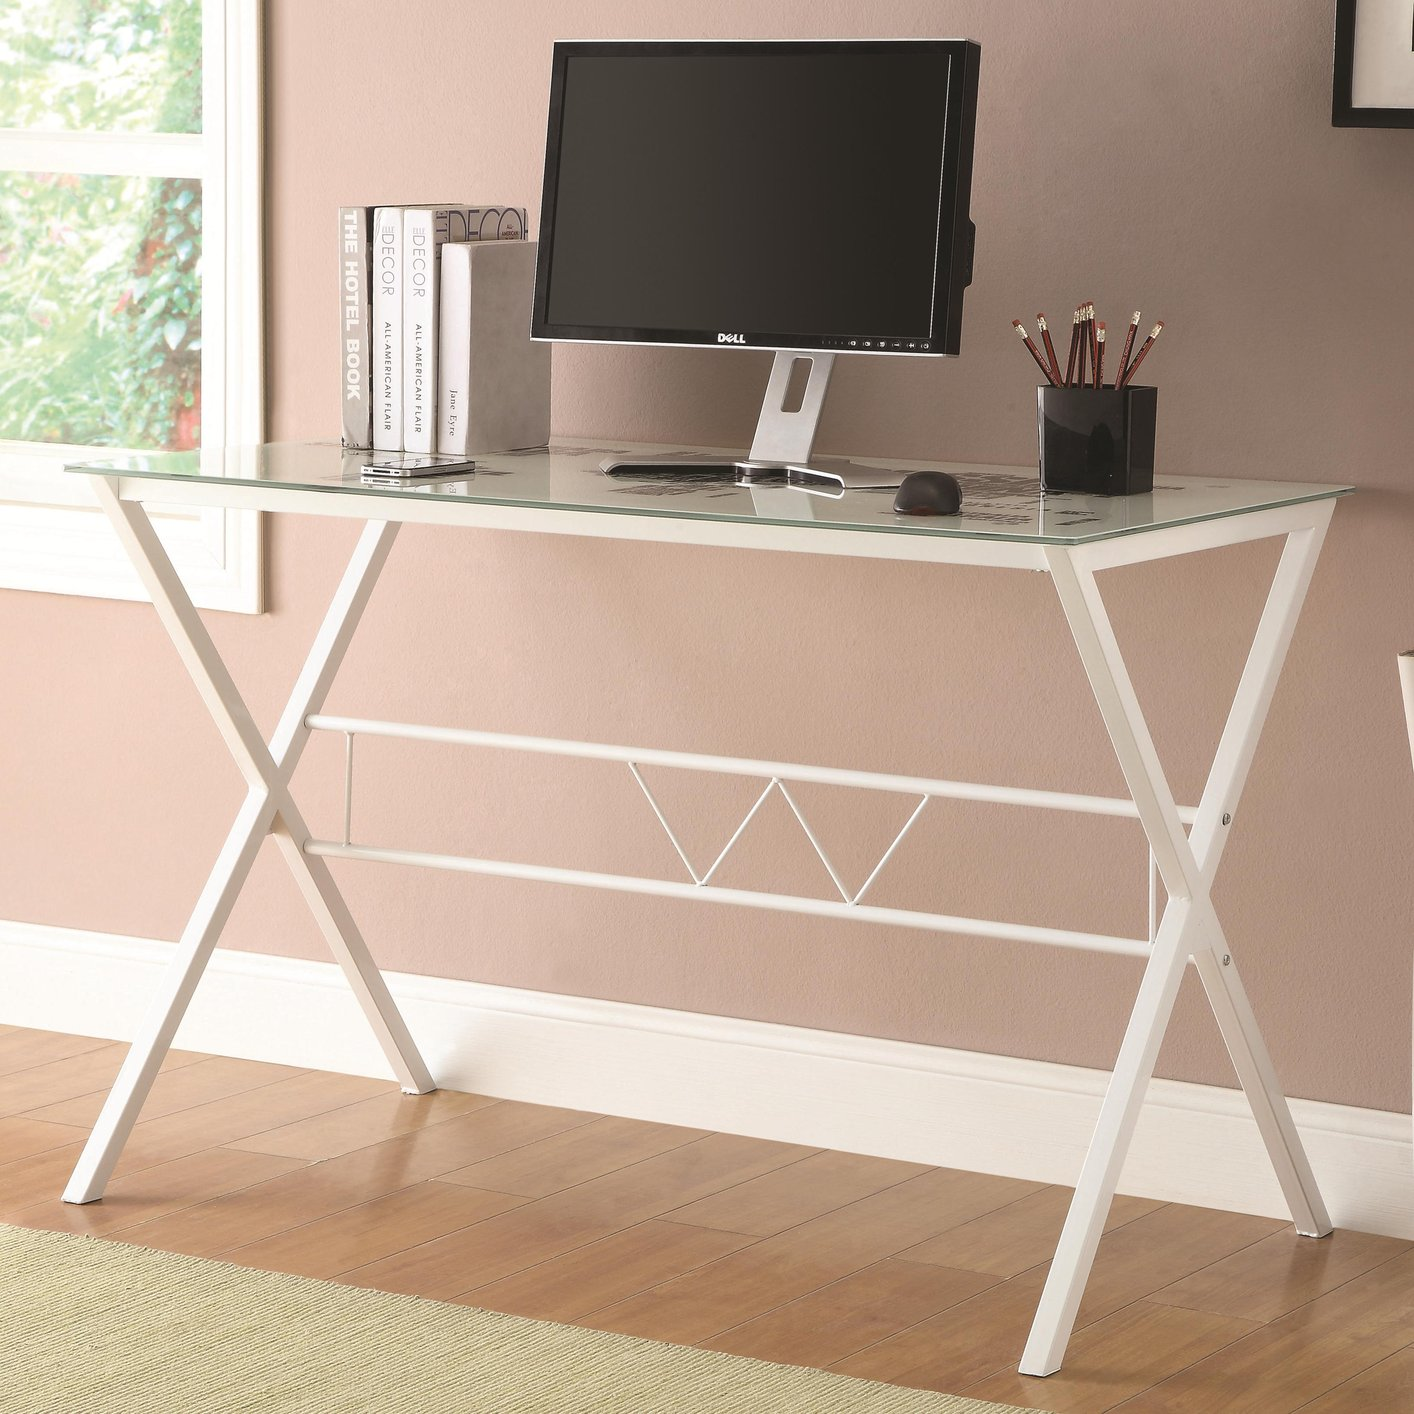 Coaster 800406 White Glass Office Desk - Steal-A-Sofa Furniture Outlet ...